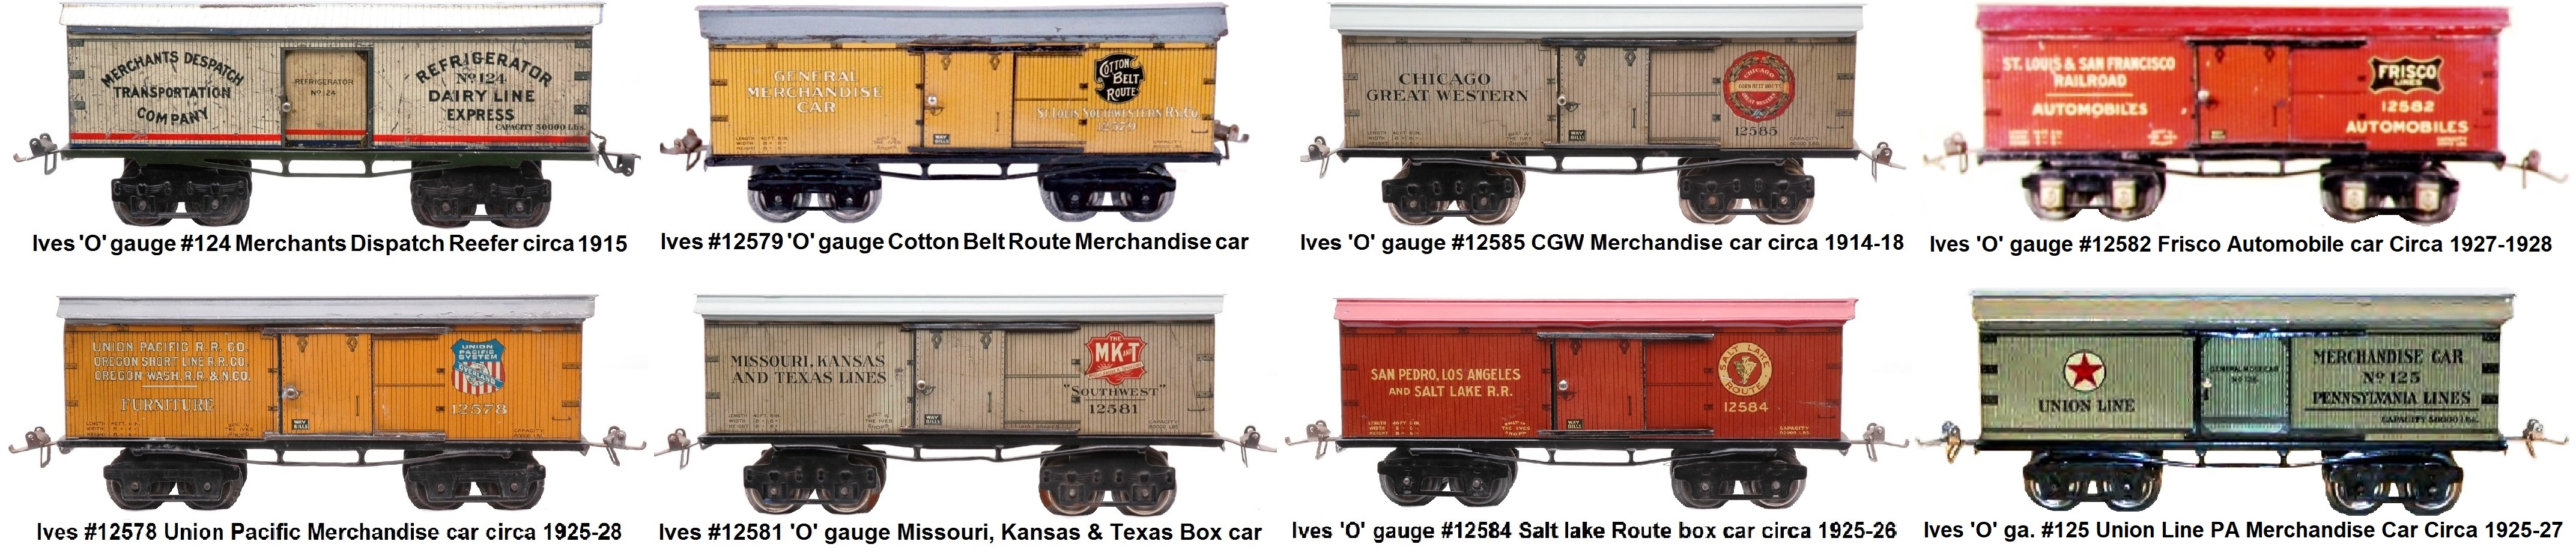 Ives #124 series 9 inch box cars in 'O' gauge